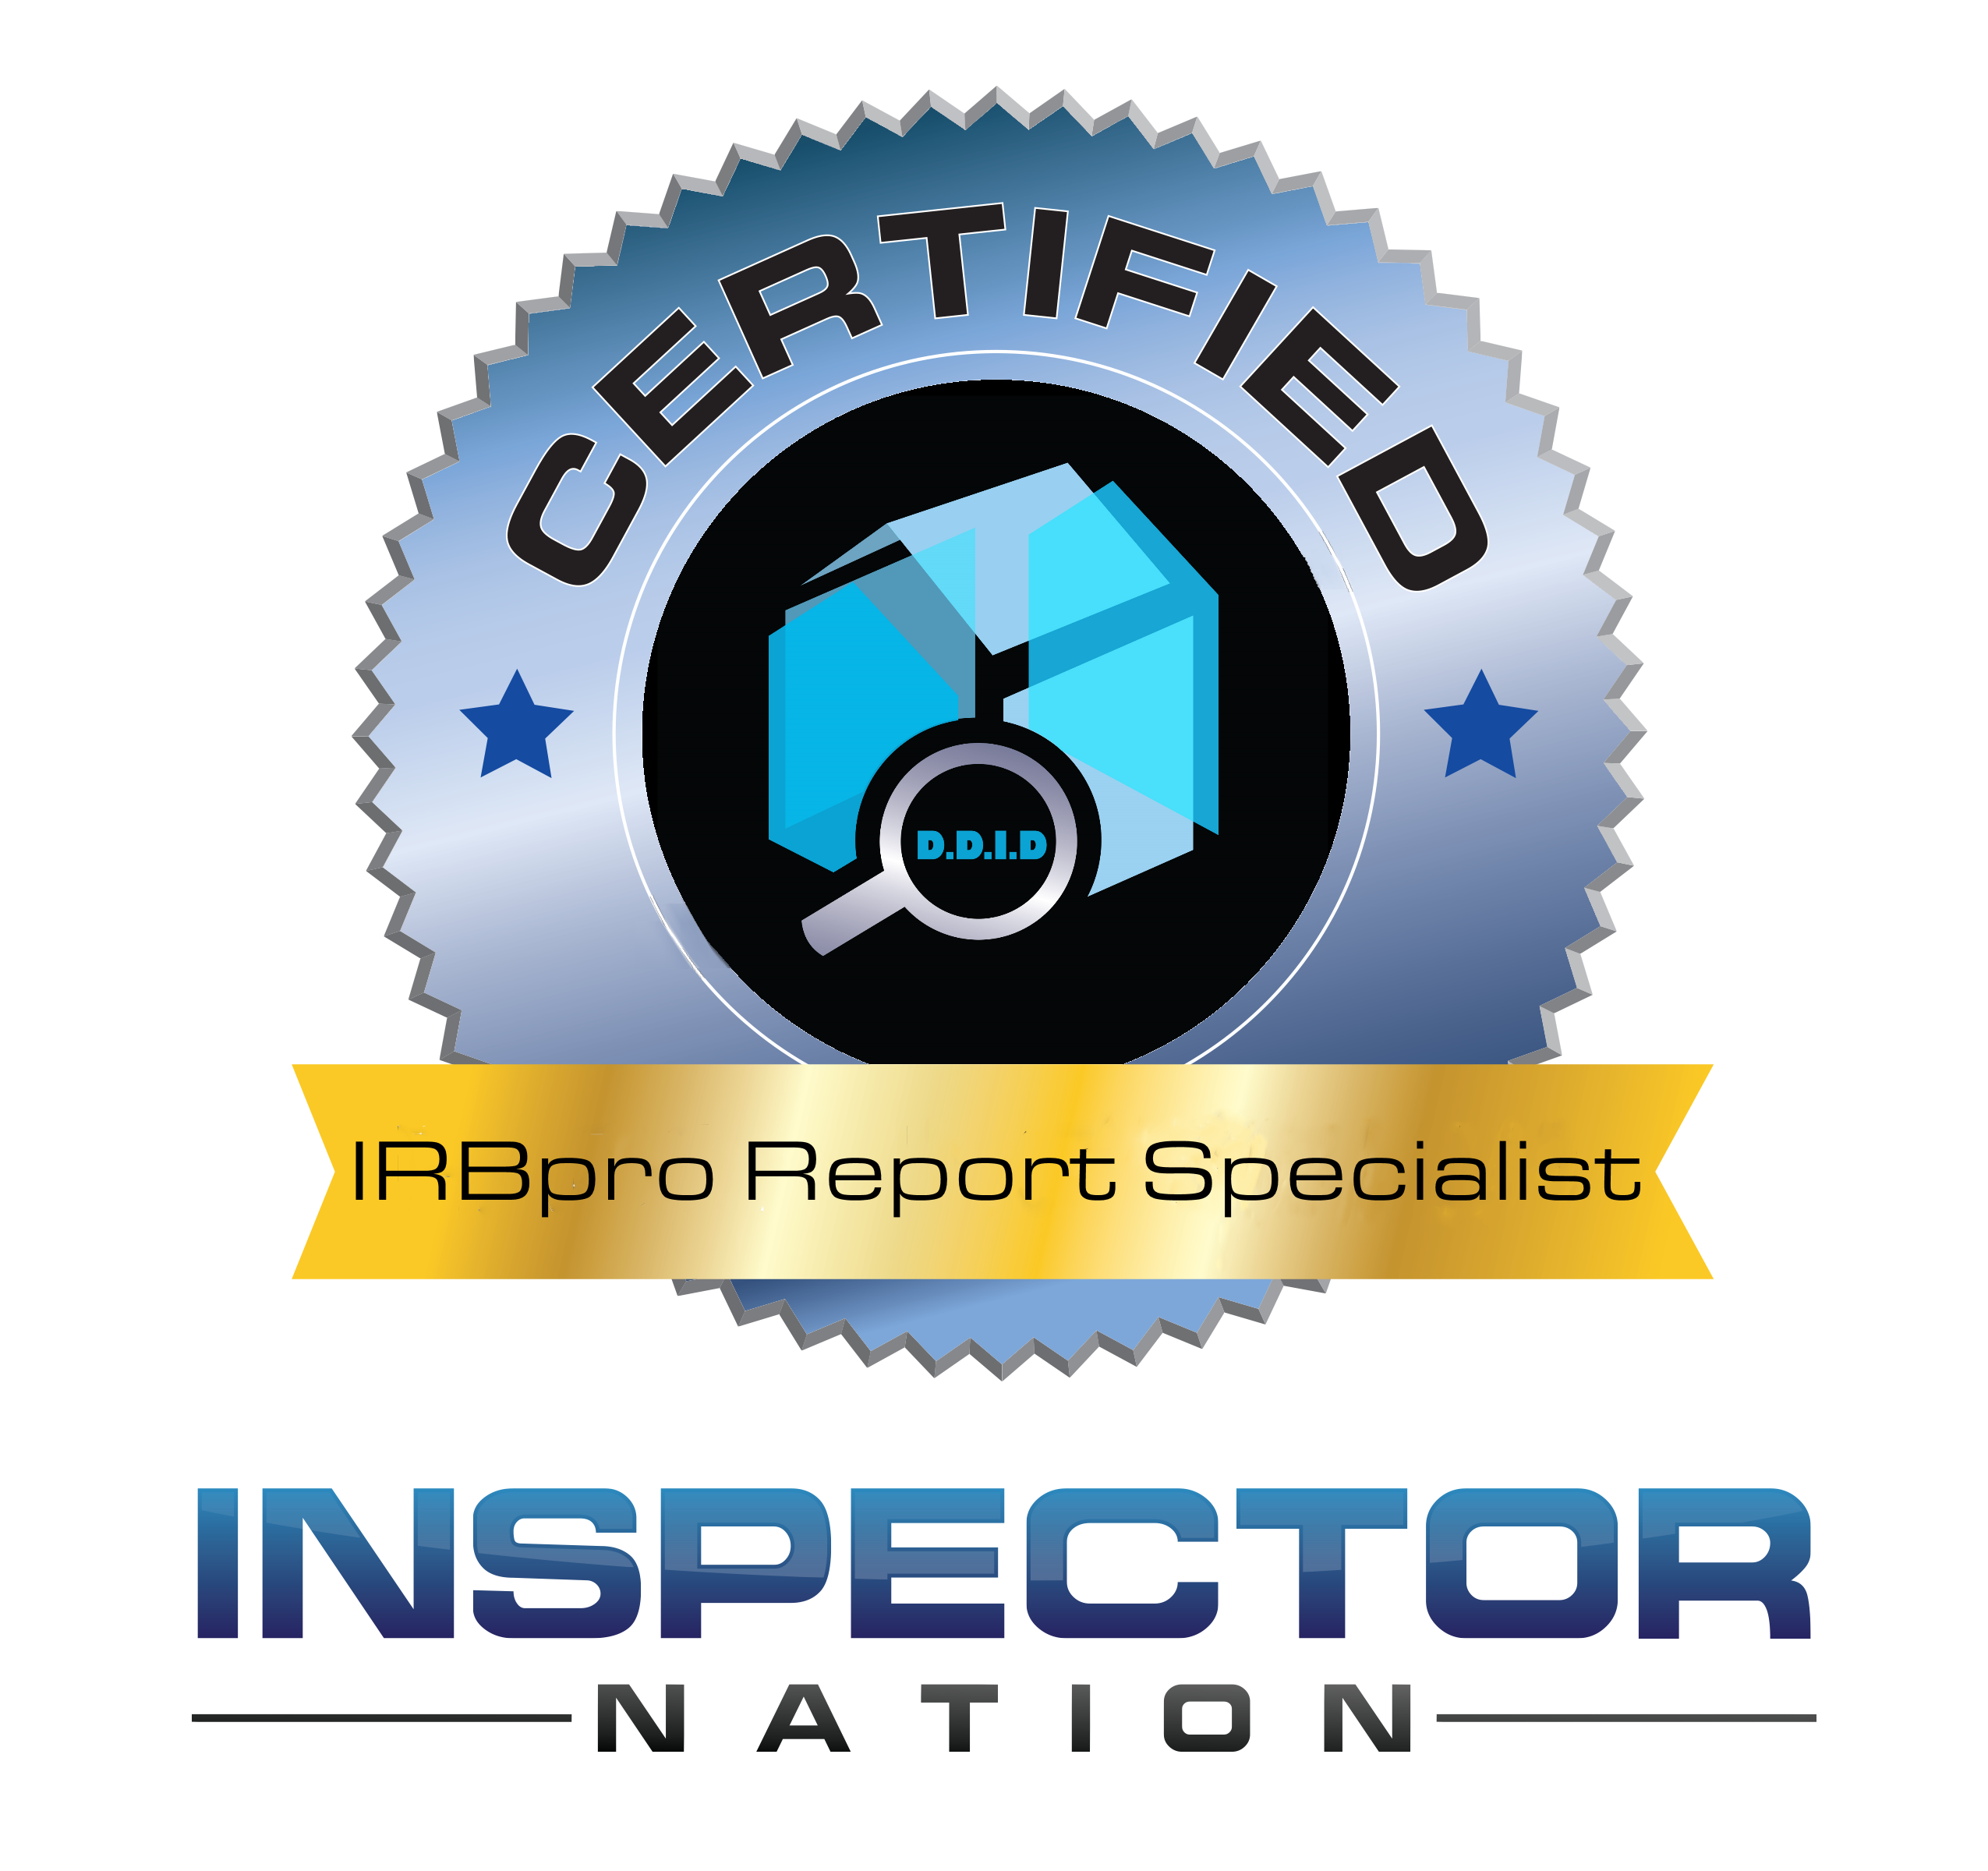 irbpro software report specialist inspector nation certified home inspector badge emblem icon